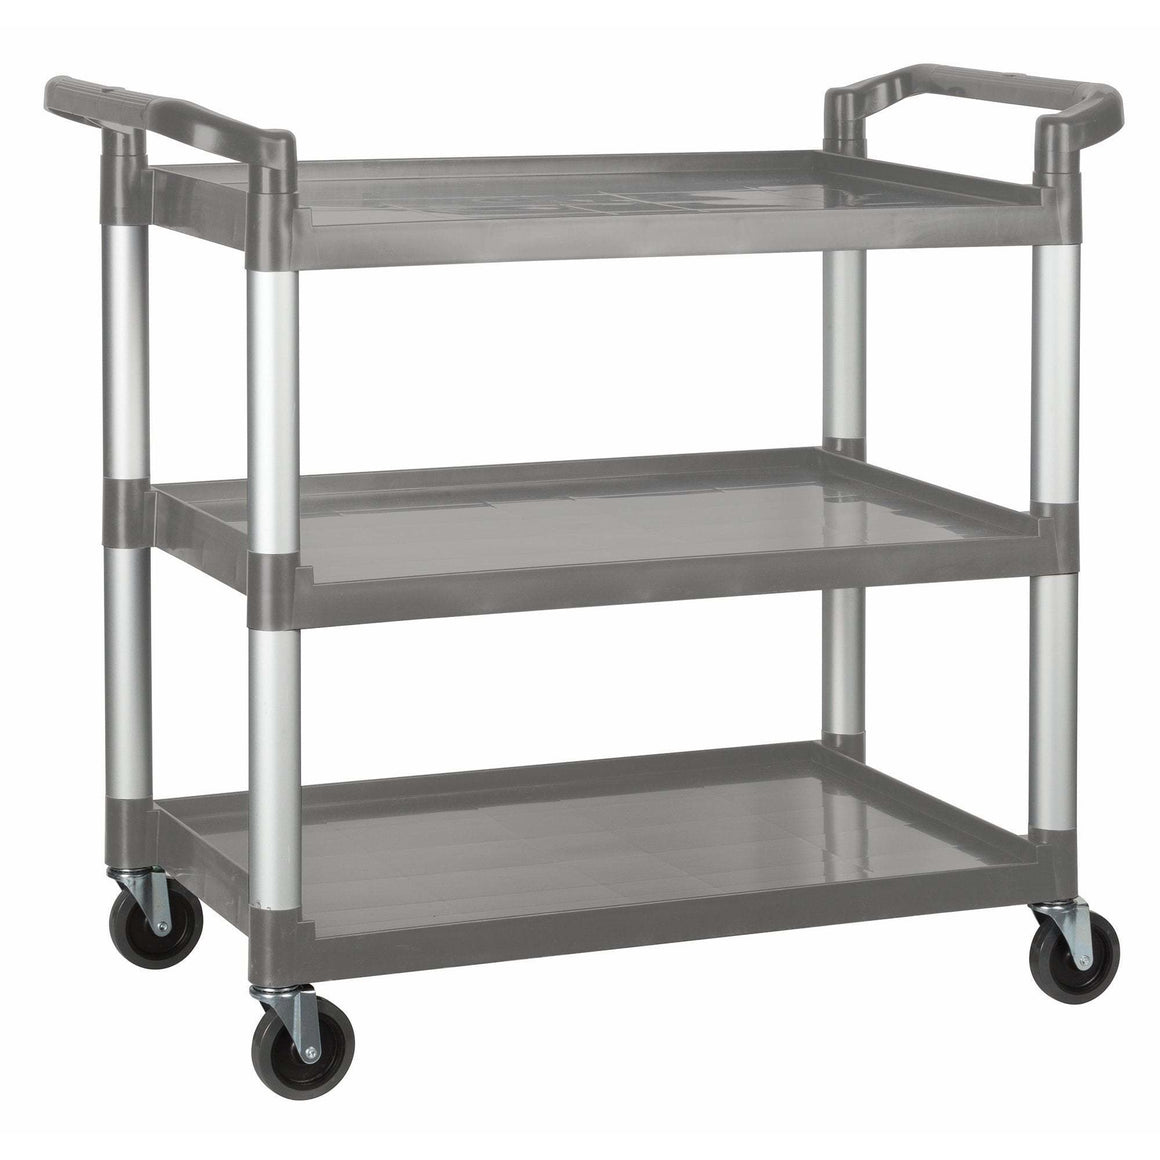 "Winco - UC-3019G - Plastic Utility Cart, 40-3/4""L x 19-1/2""W x 37-3/8""H, 3 Tier, Gray - Bussing - Maltese & Co New and Used  restaurant Equipment"